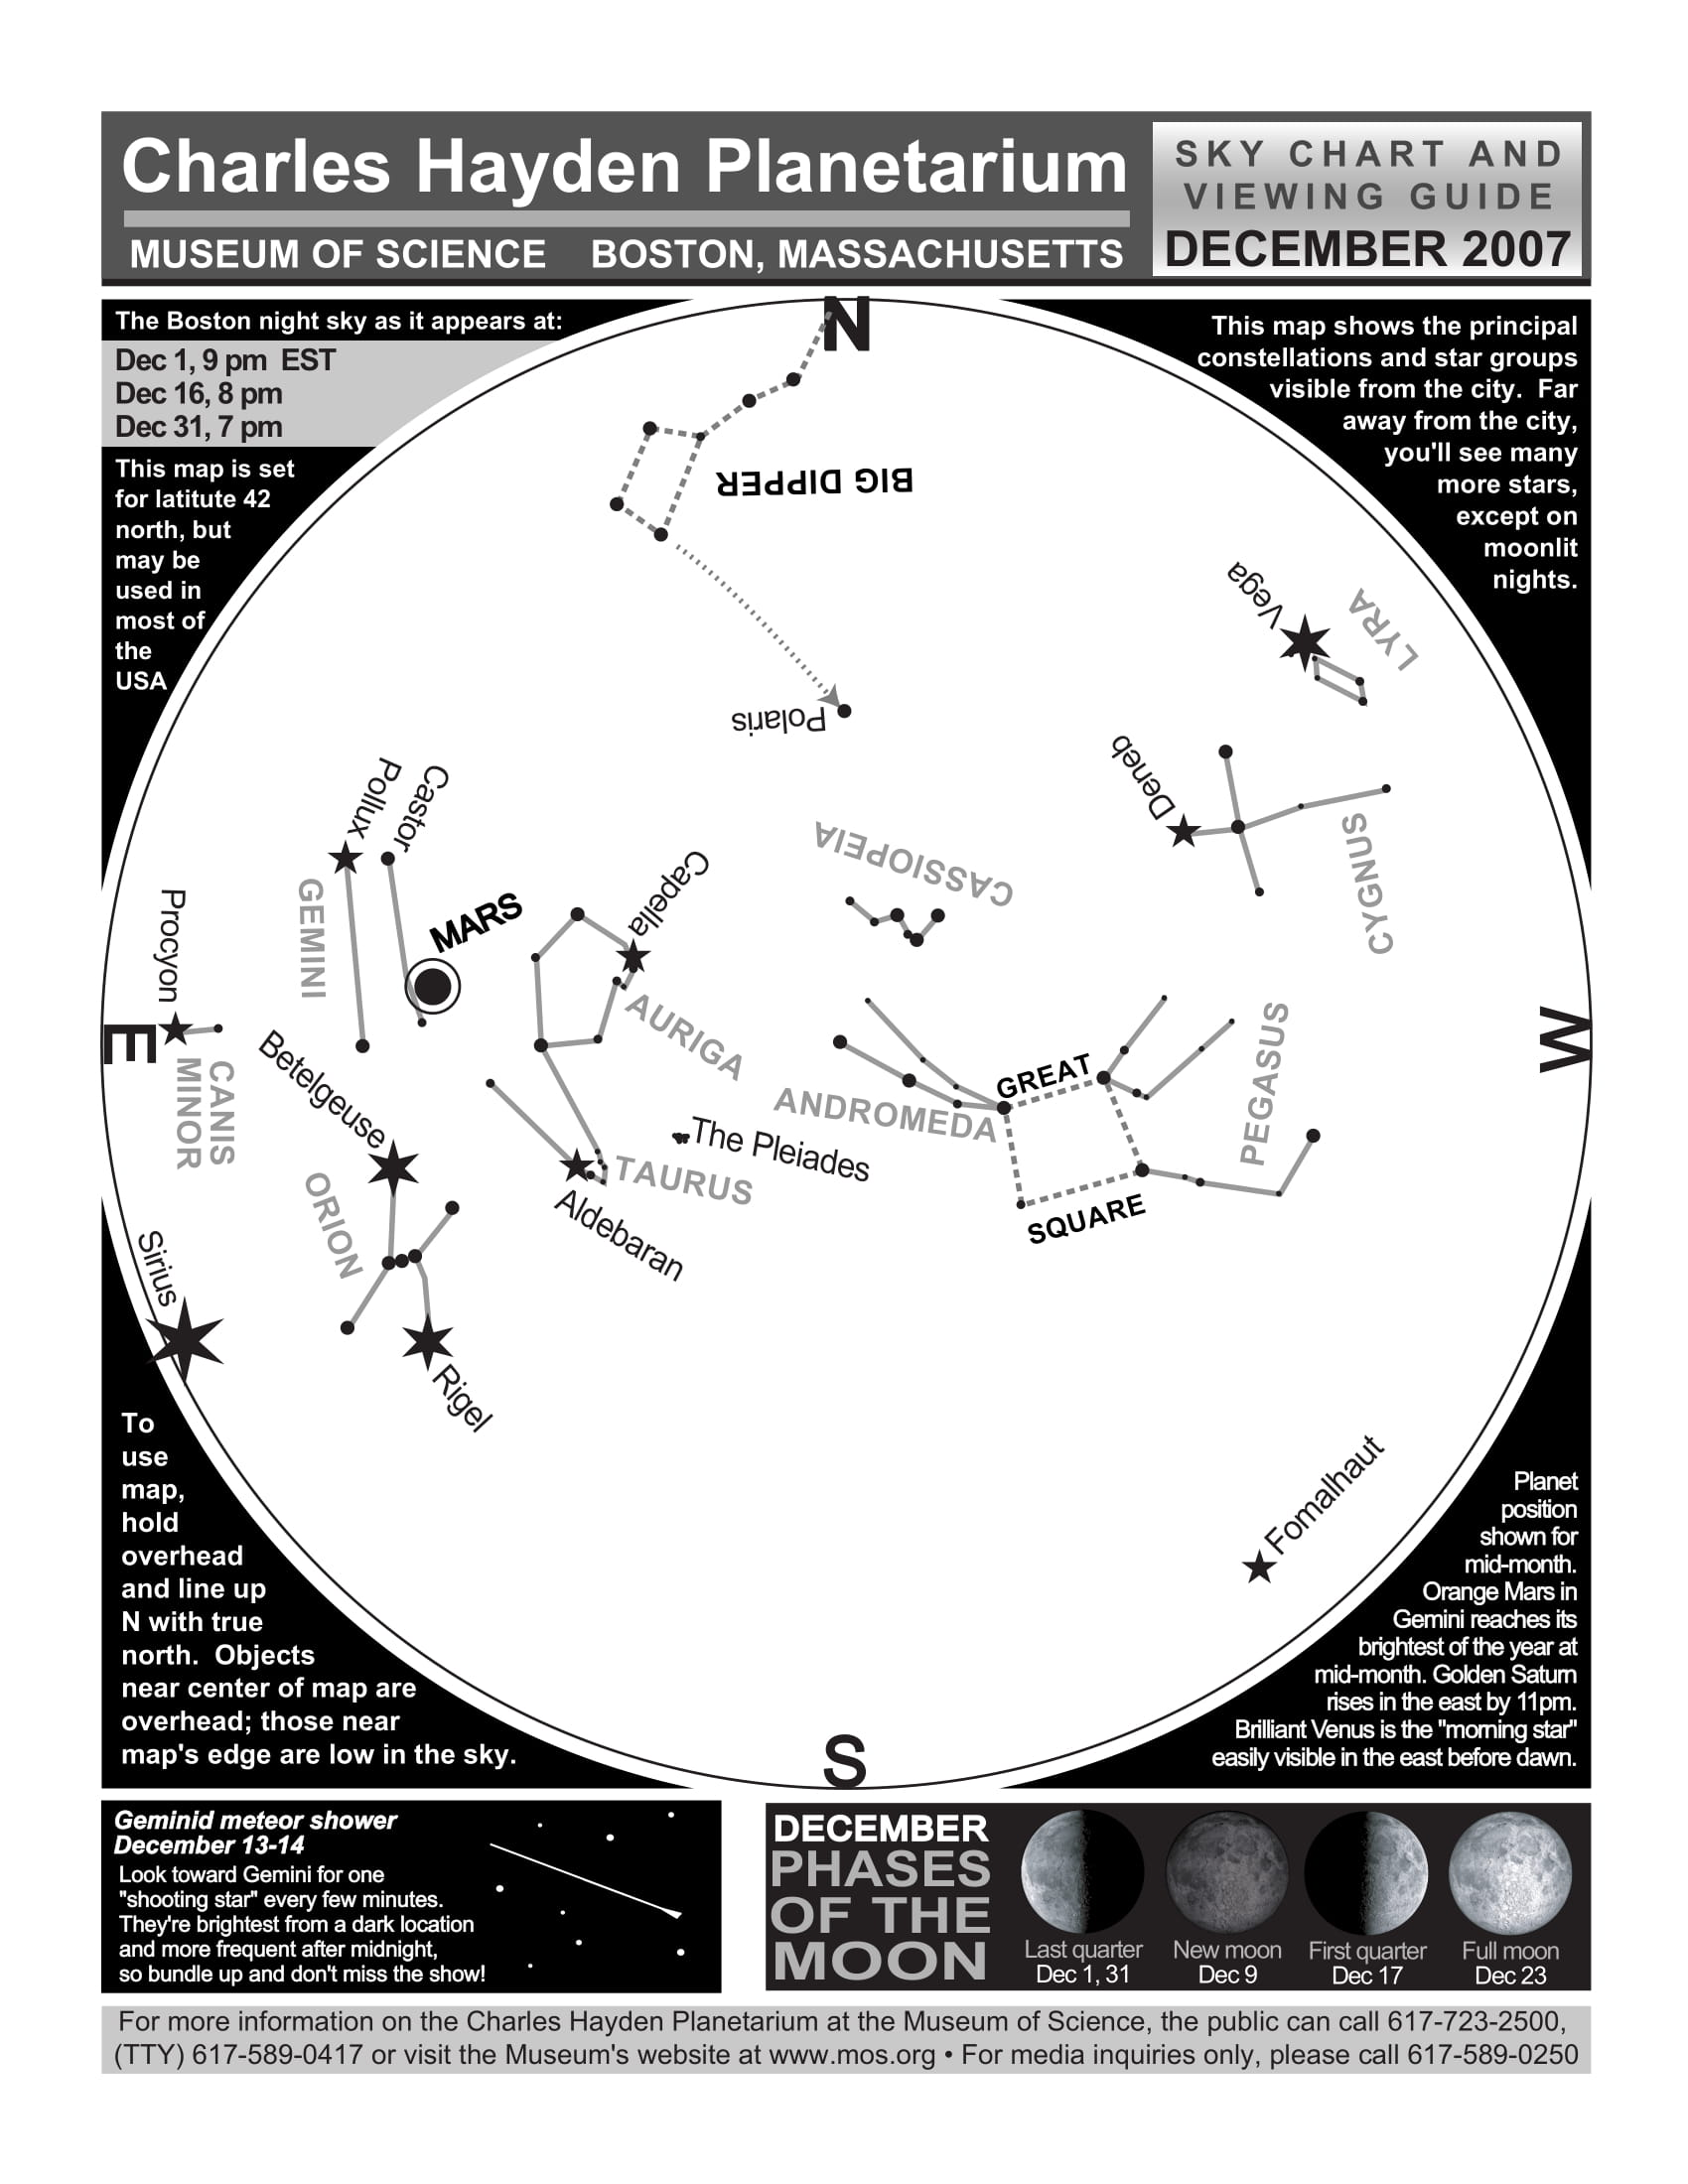 Charles Hayden Planetarium Sky Chart and viewing guide for December 2007.